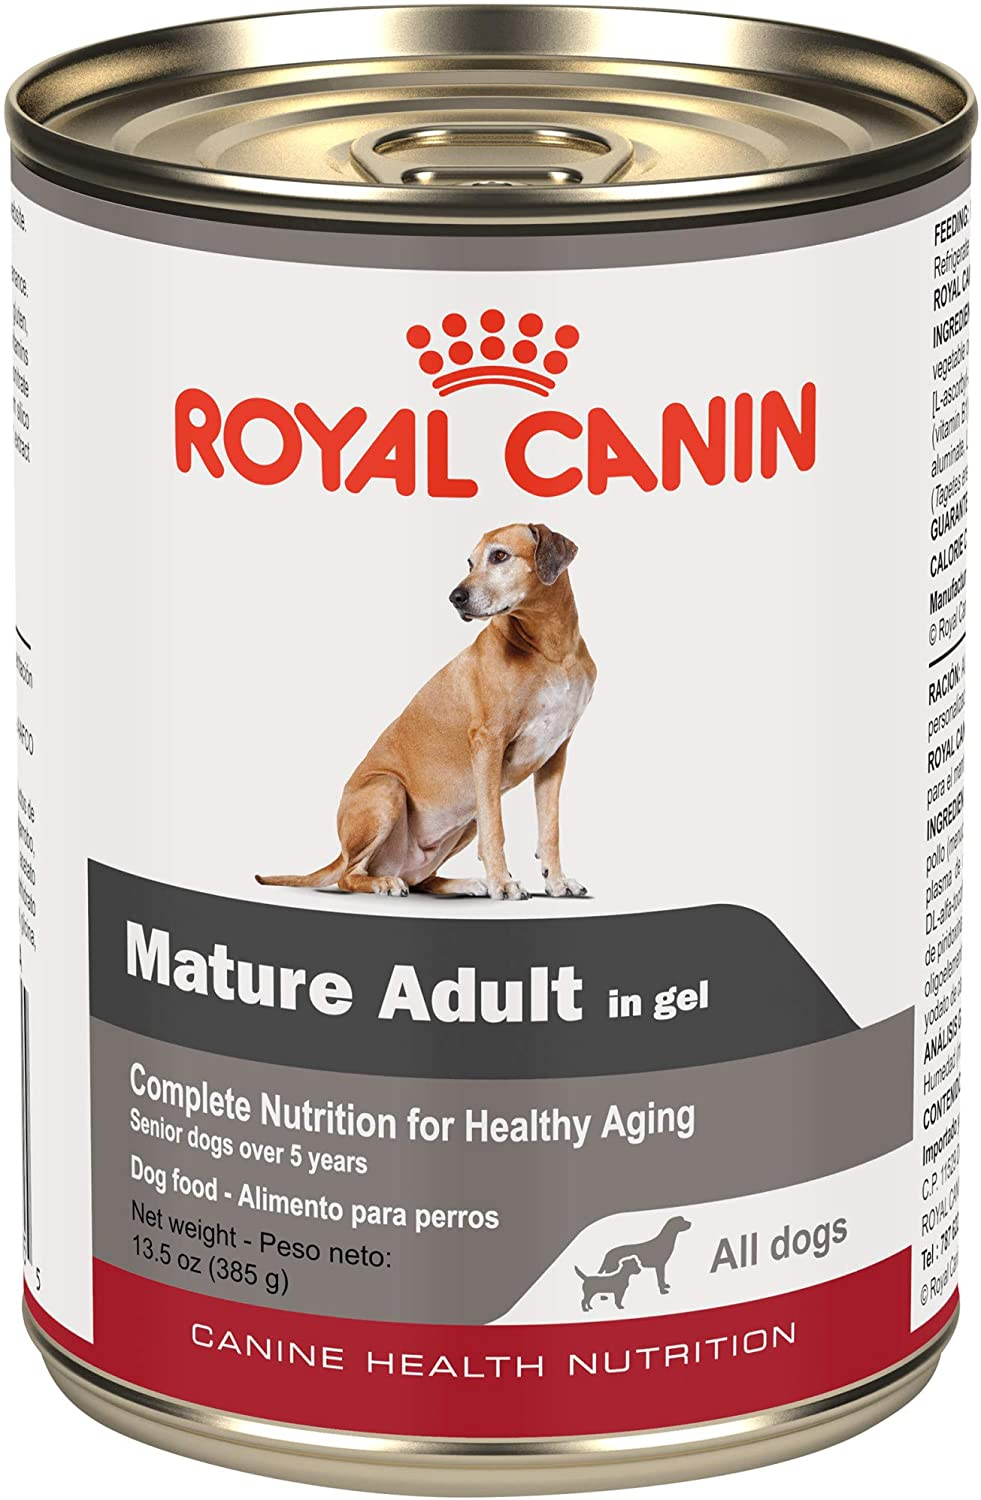 Royal Canin Canine Health Nutrition Mature Adult In Gel Canned Dog Food, 13.5 oz Can (Case of 12)